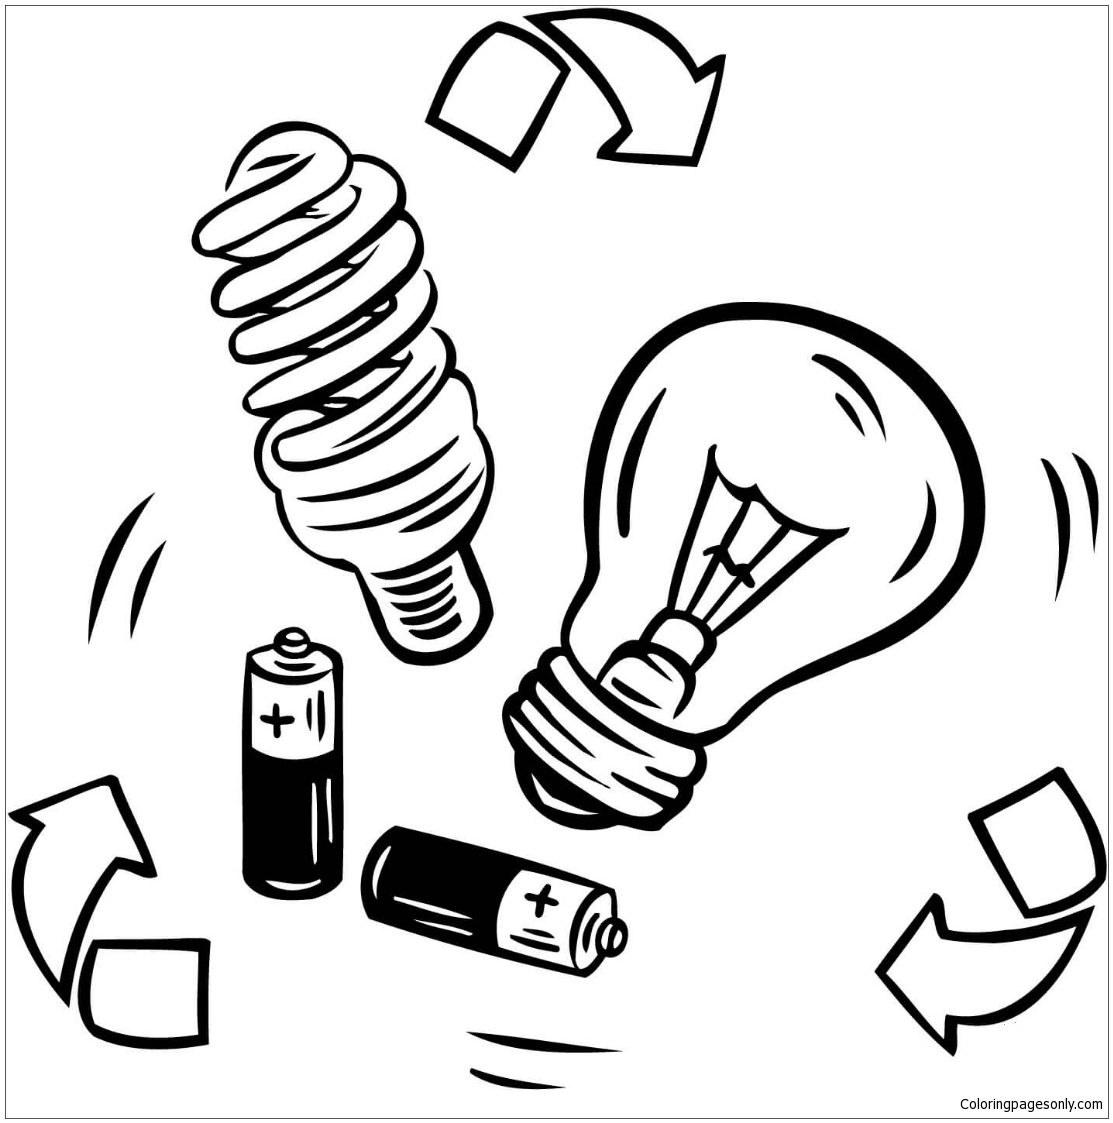 Bulb Recycling From Battery Coloring Page